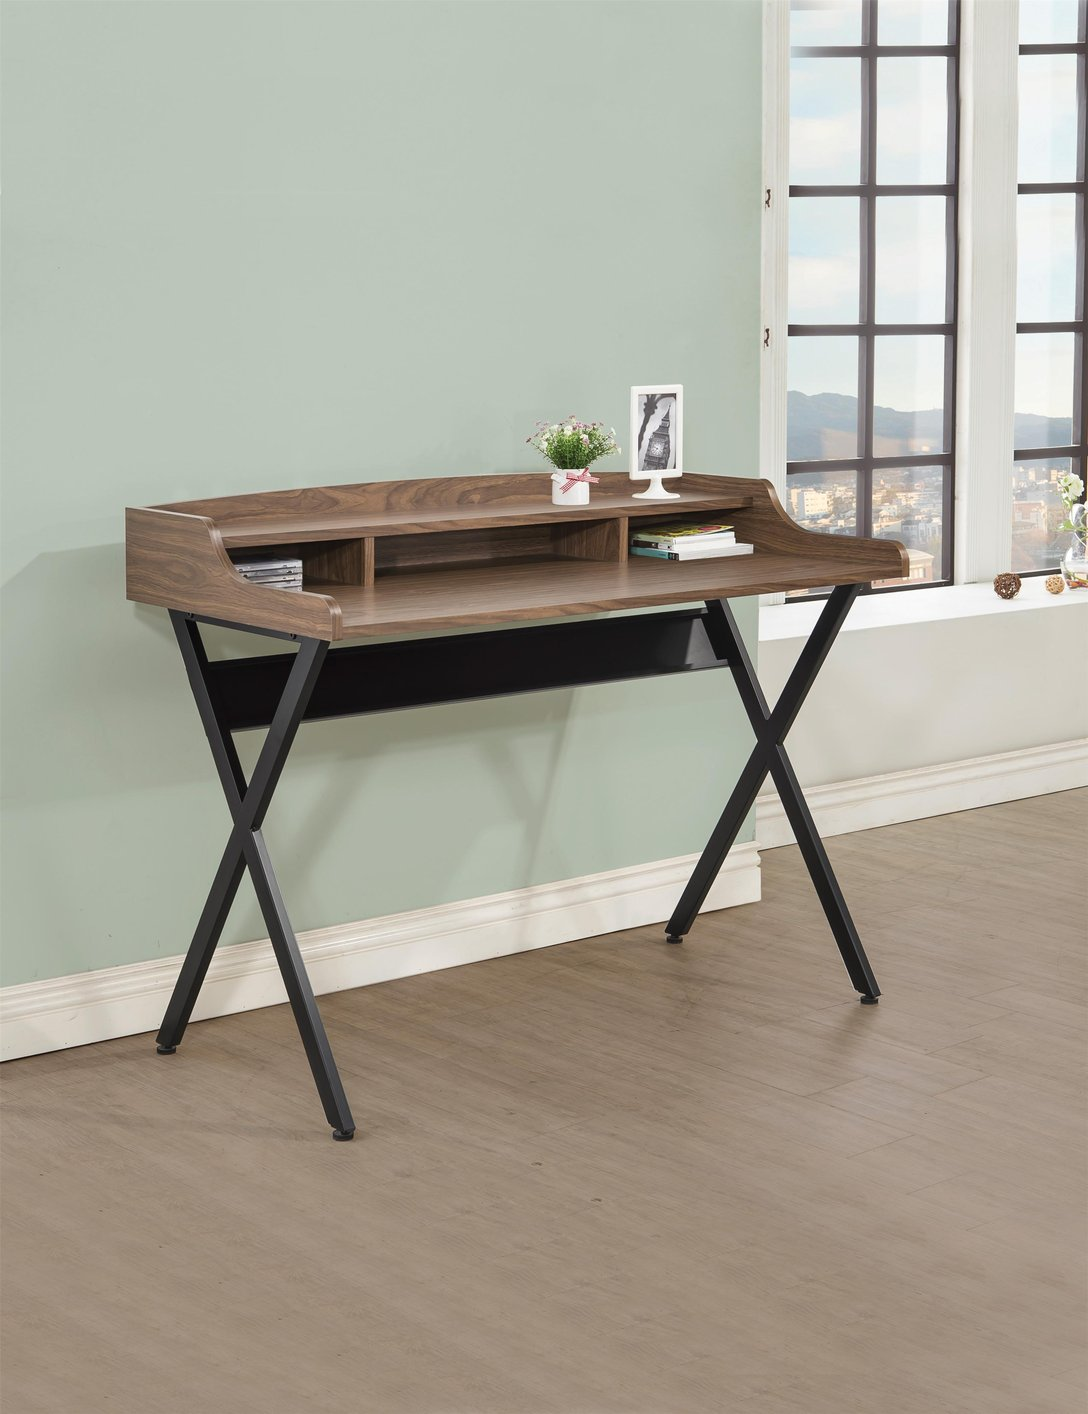 metal writing desk Steel & metal desks from global industrial offer heavy duty construction and durability, choose from many styles to fit your needs at low prices.